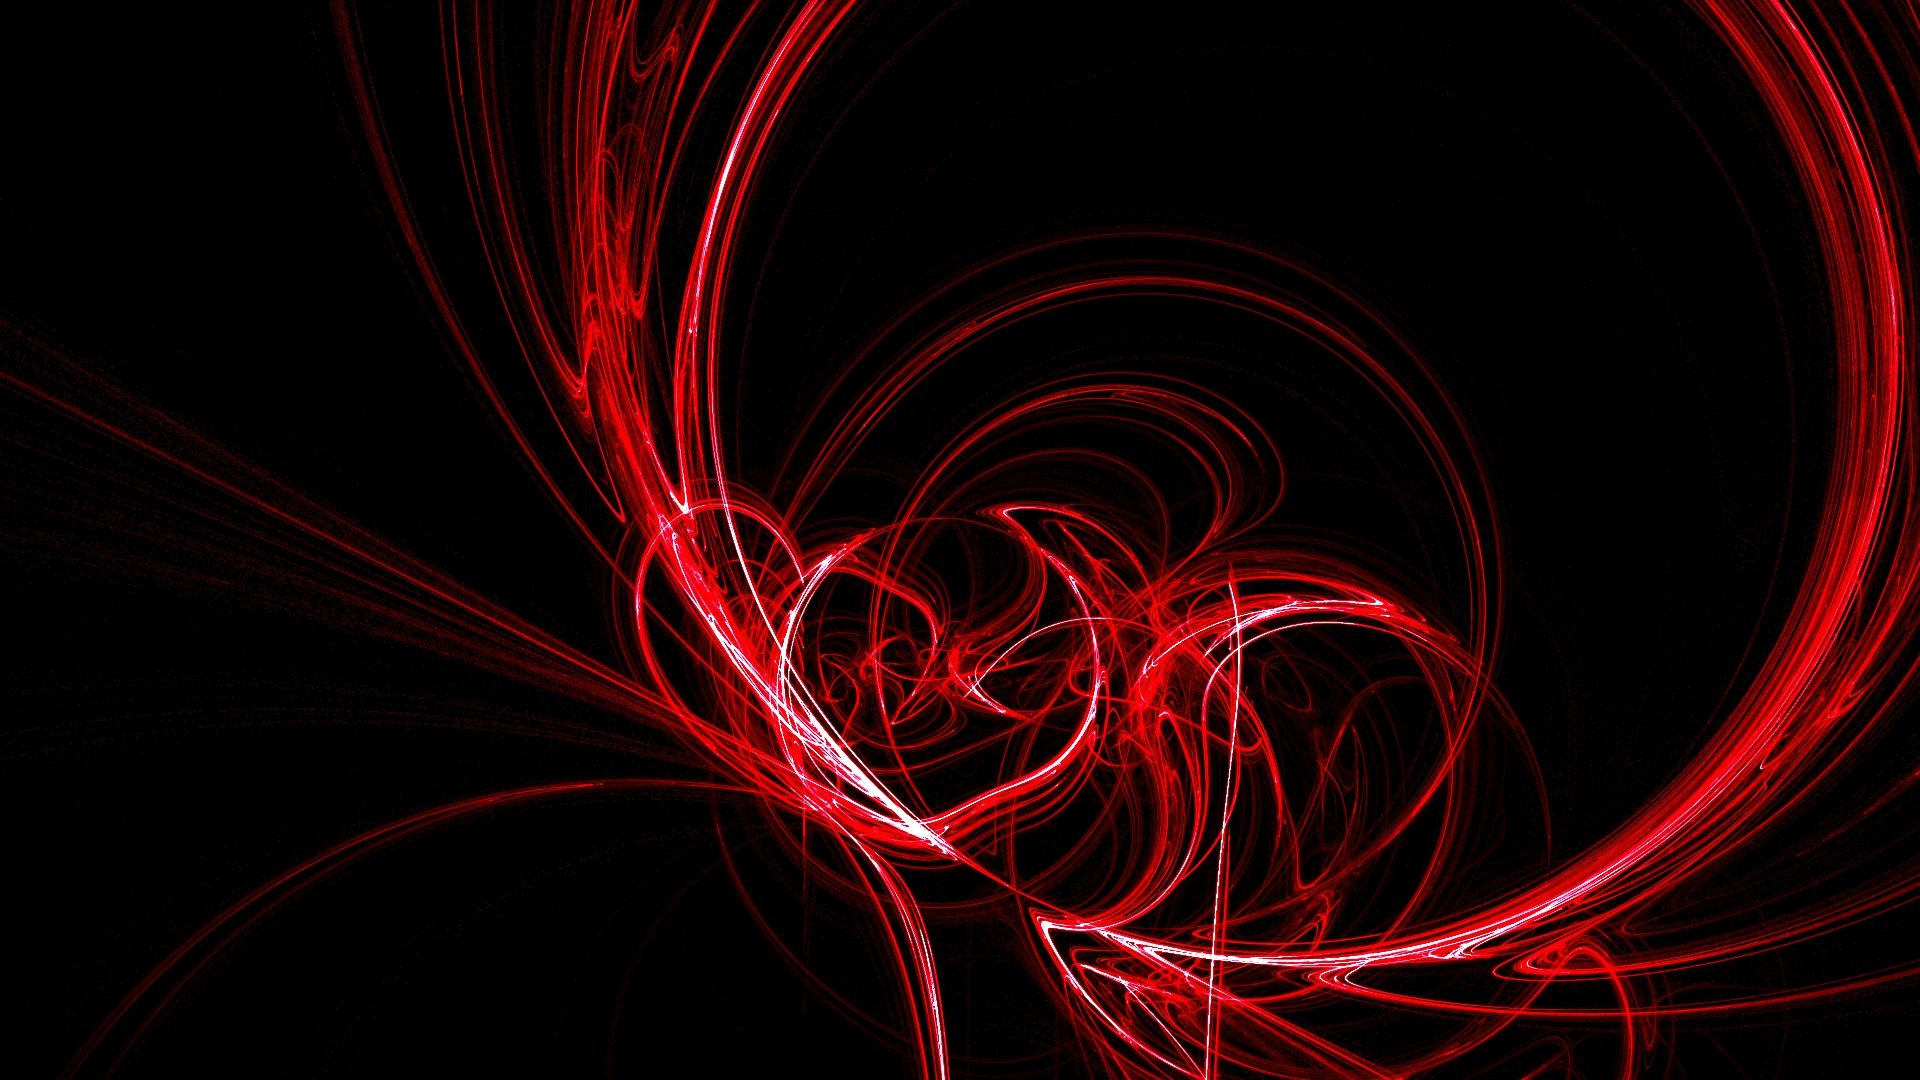 Red Abstract Wallpapers For Desktop Red And Black Wallpaper Red Wallpaper Abstract Wallpaper